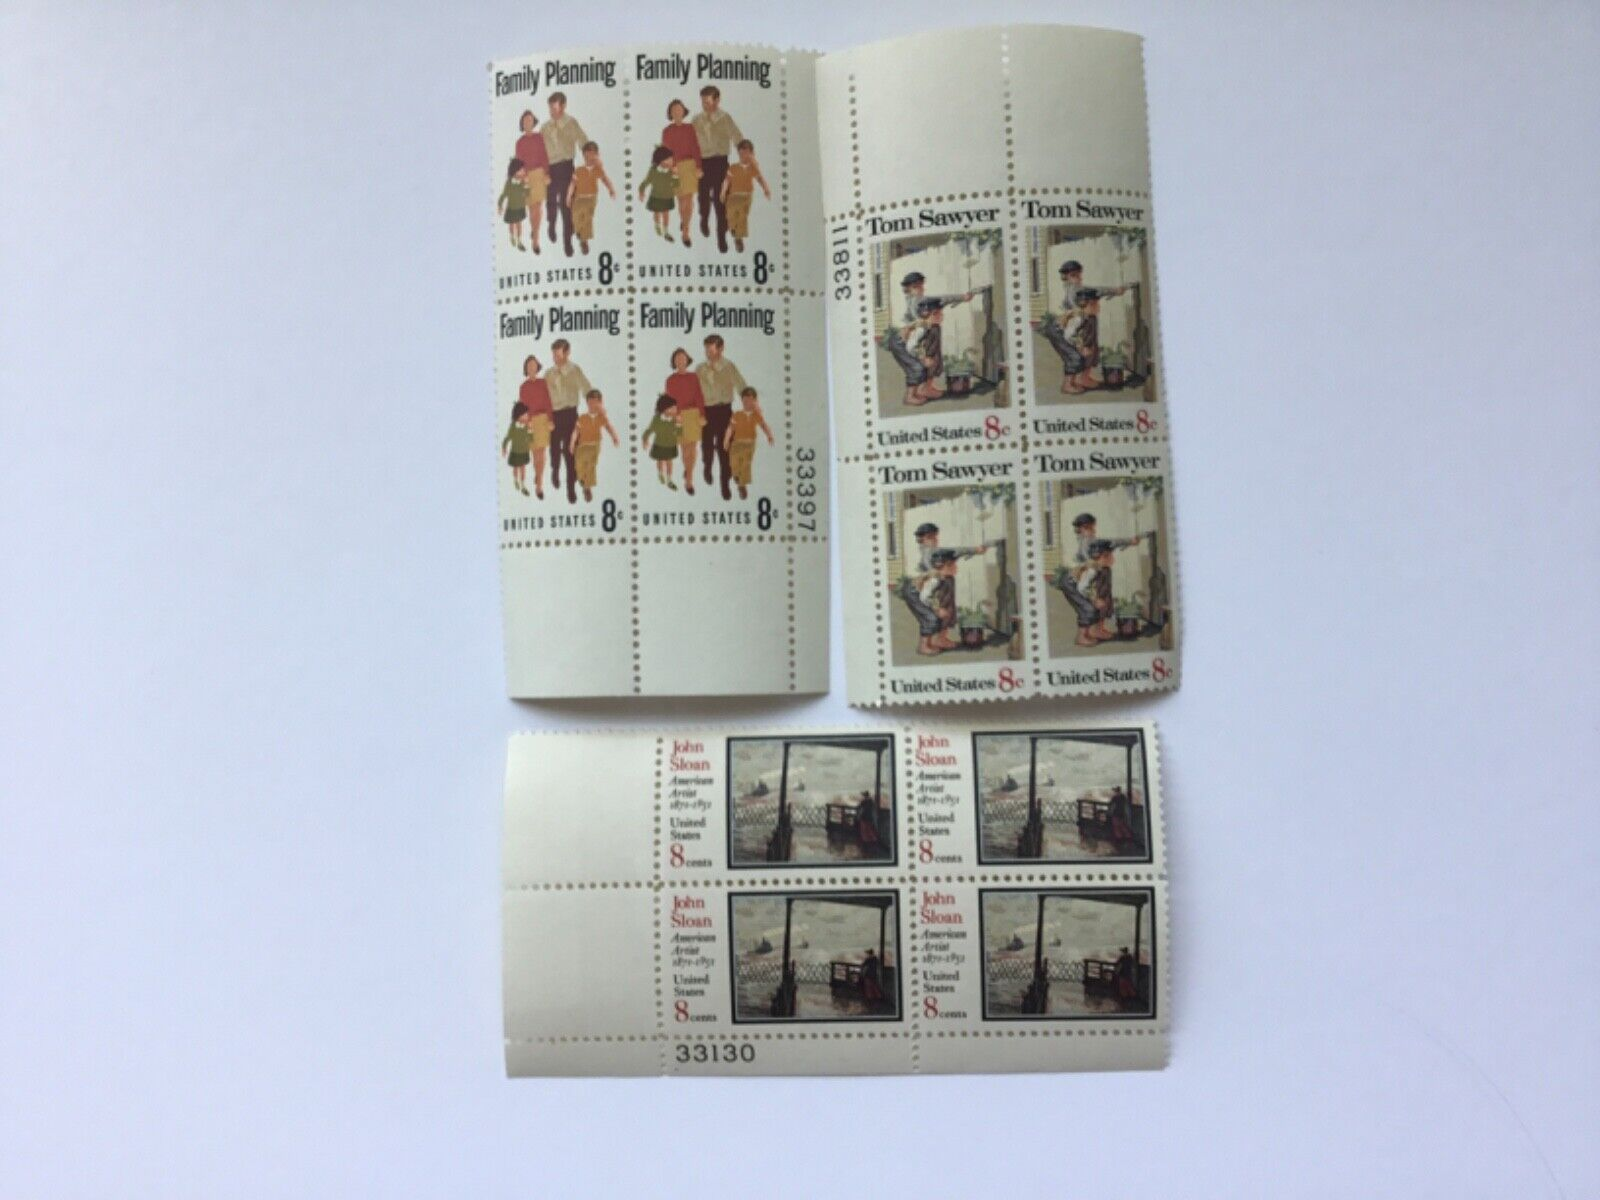 8 Cent Plate Block Stamps - $1.45